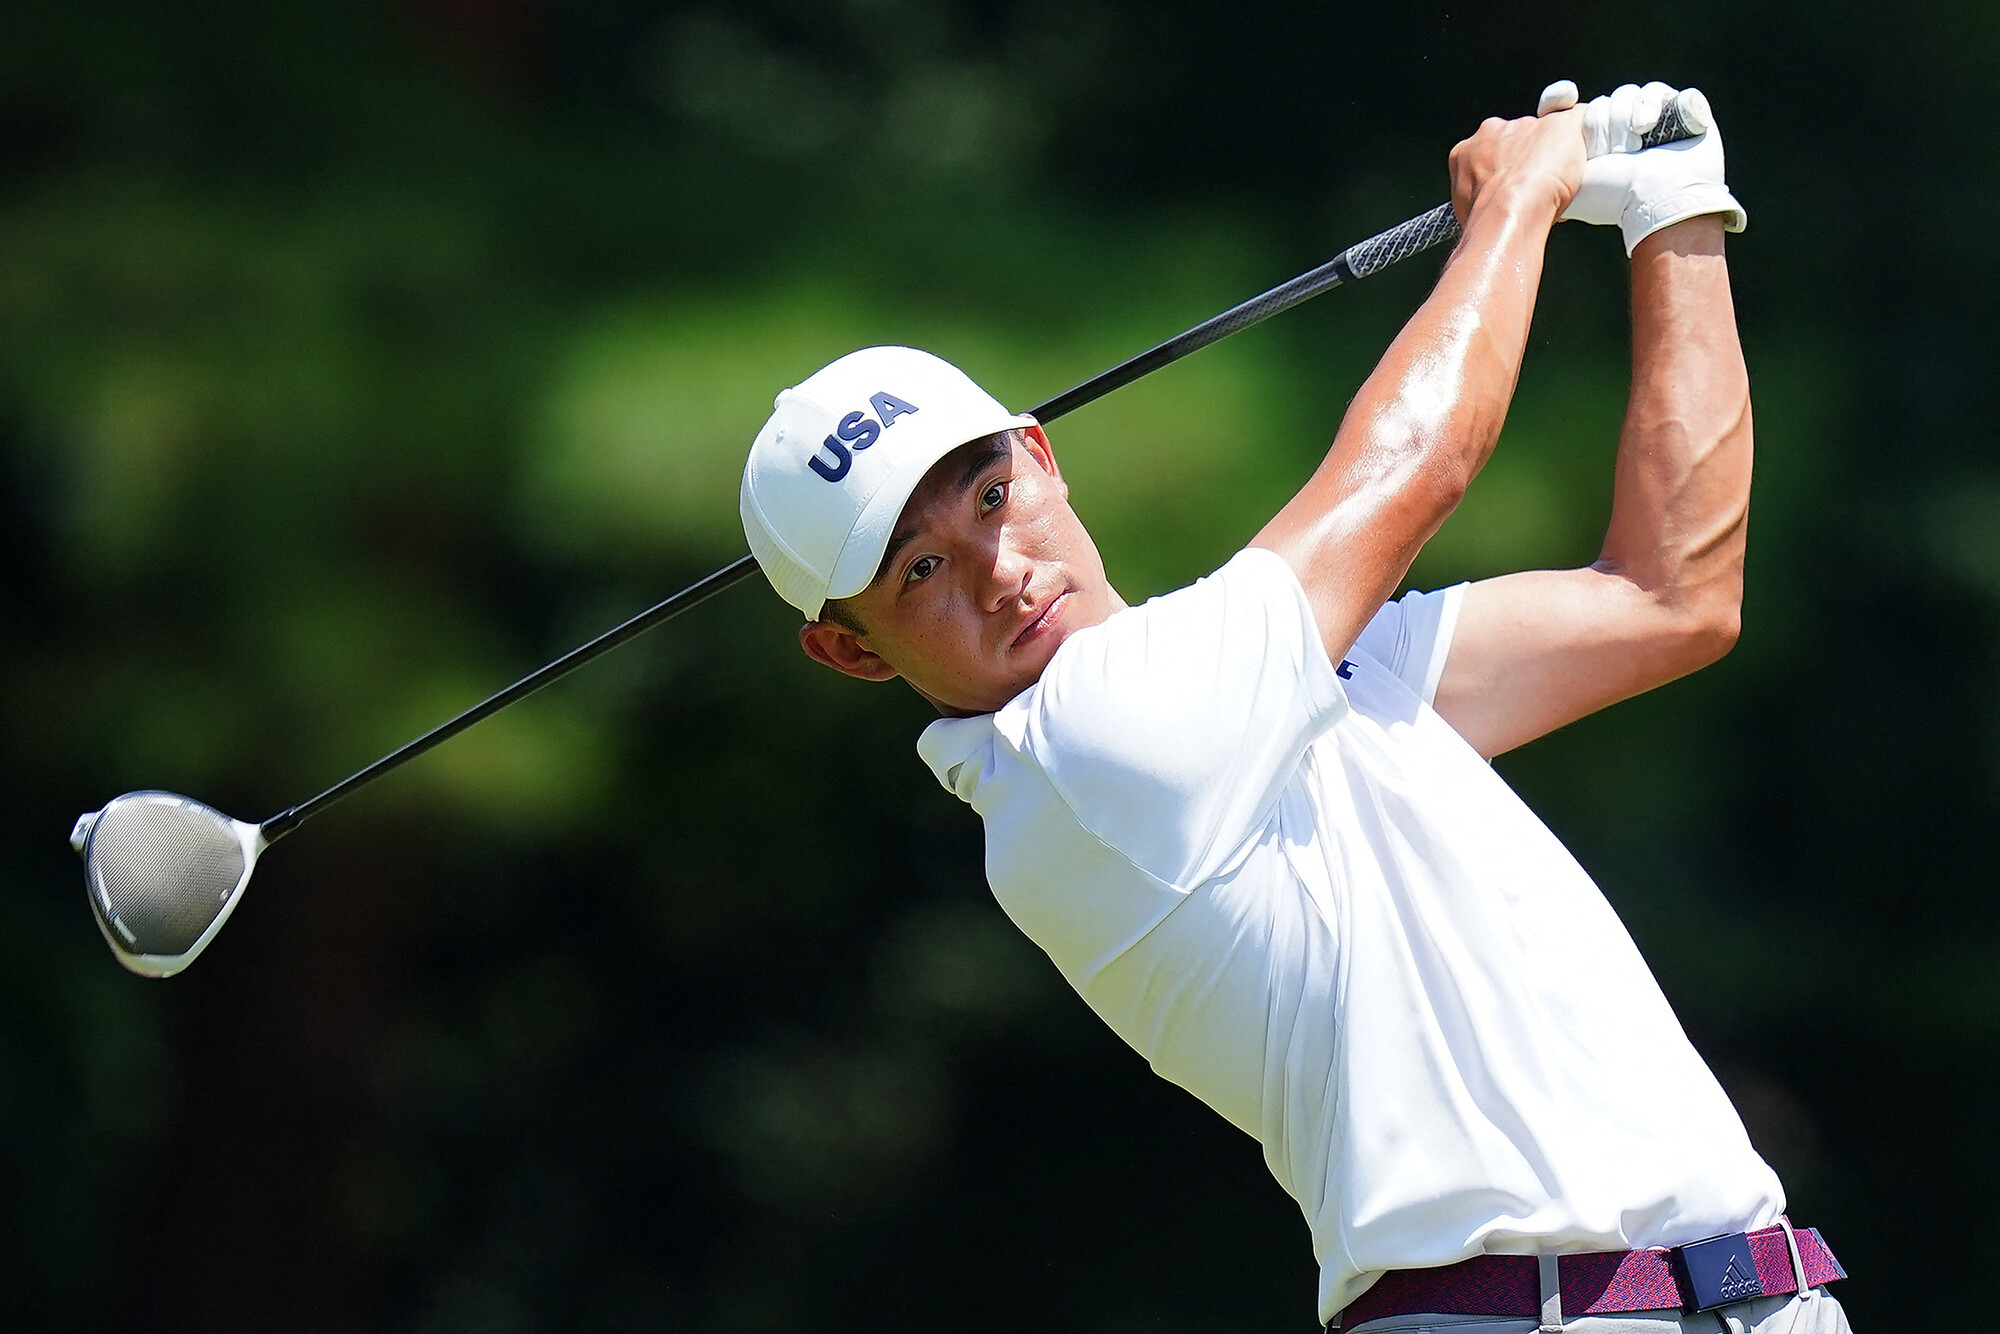 Fresh off second major victory at the Open, Collin Morikawa relishing chance to represent Team USA at Tokyo 2020